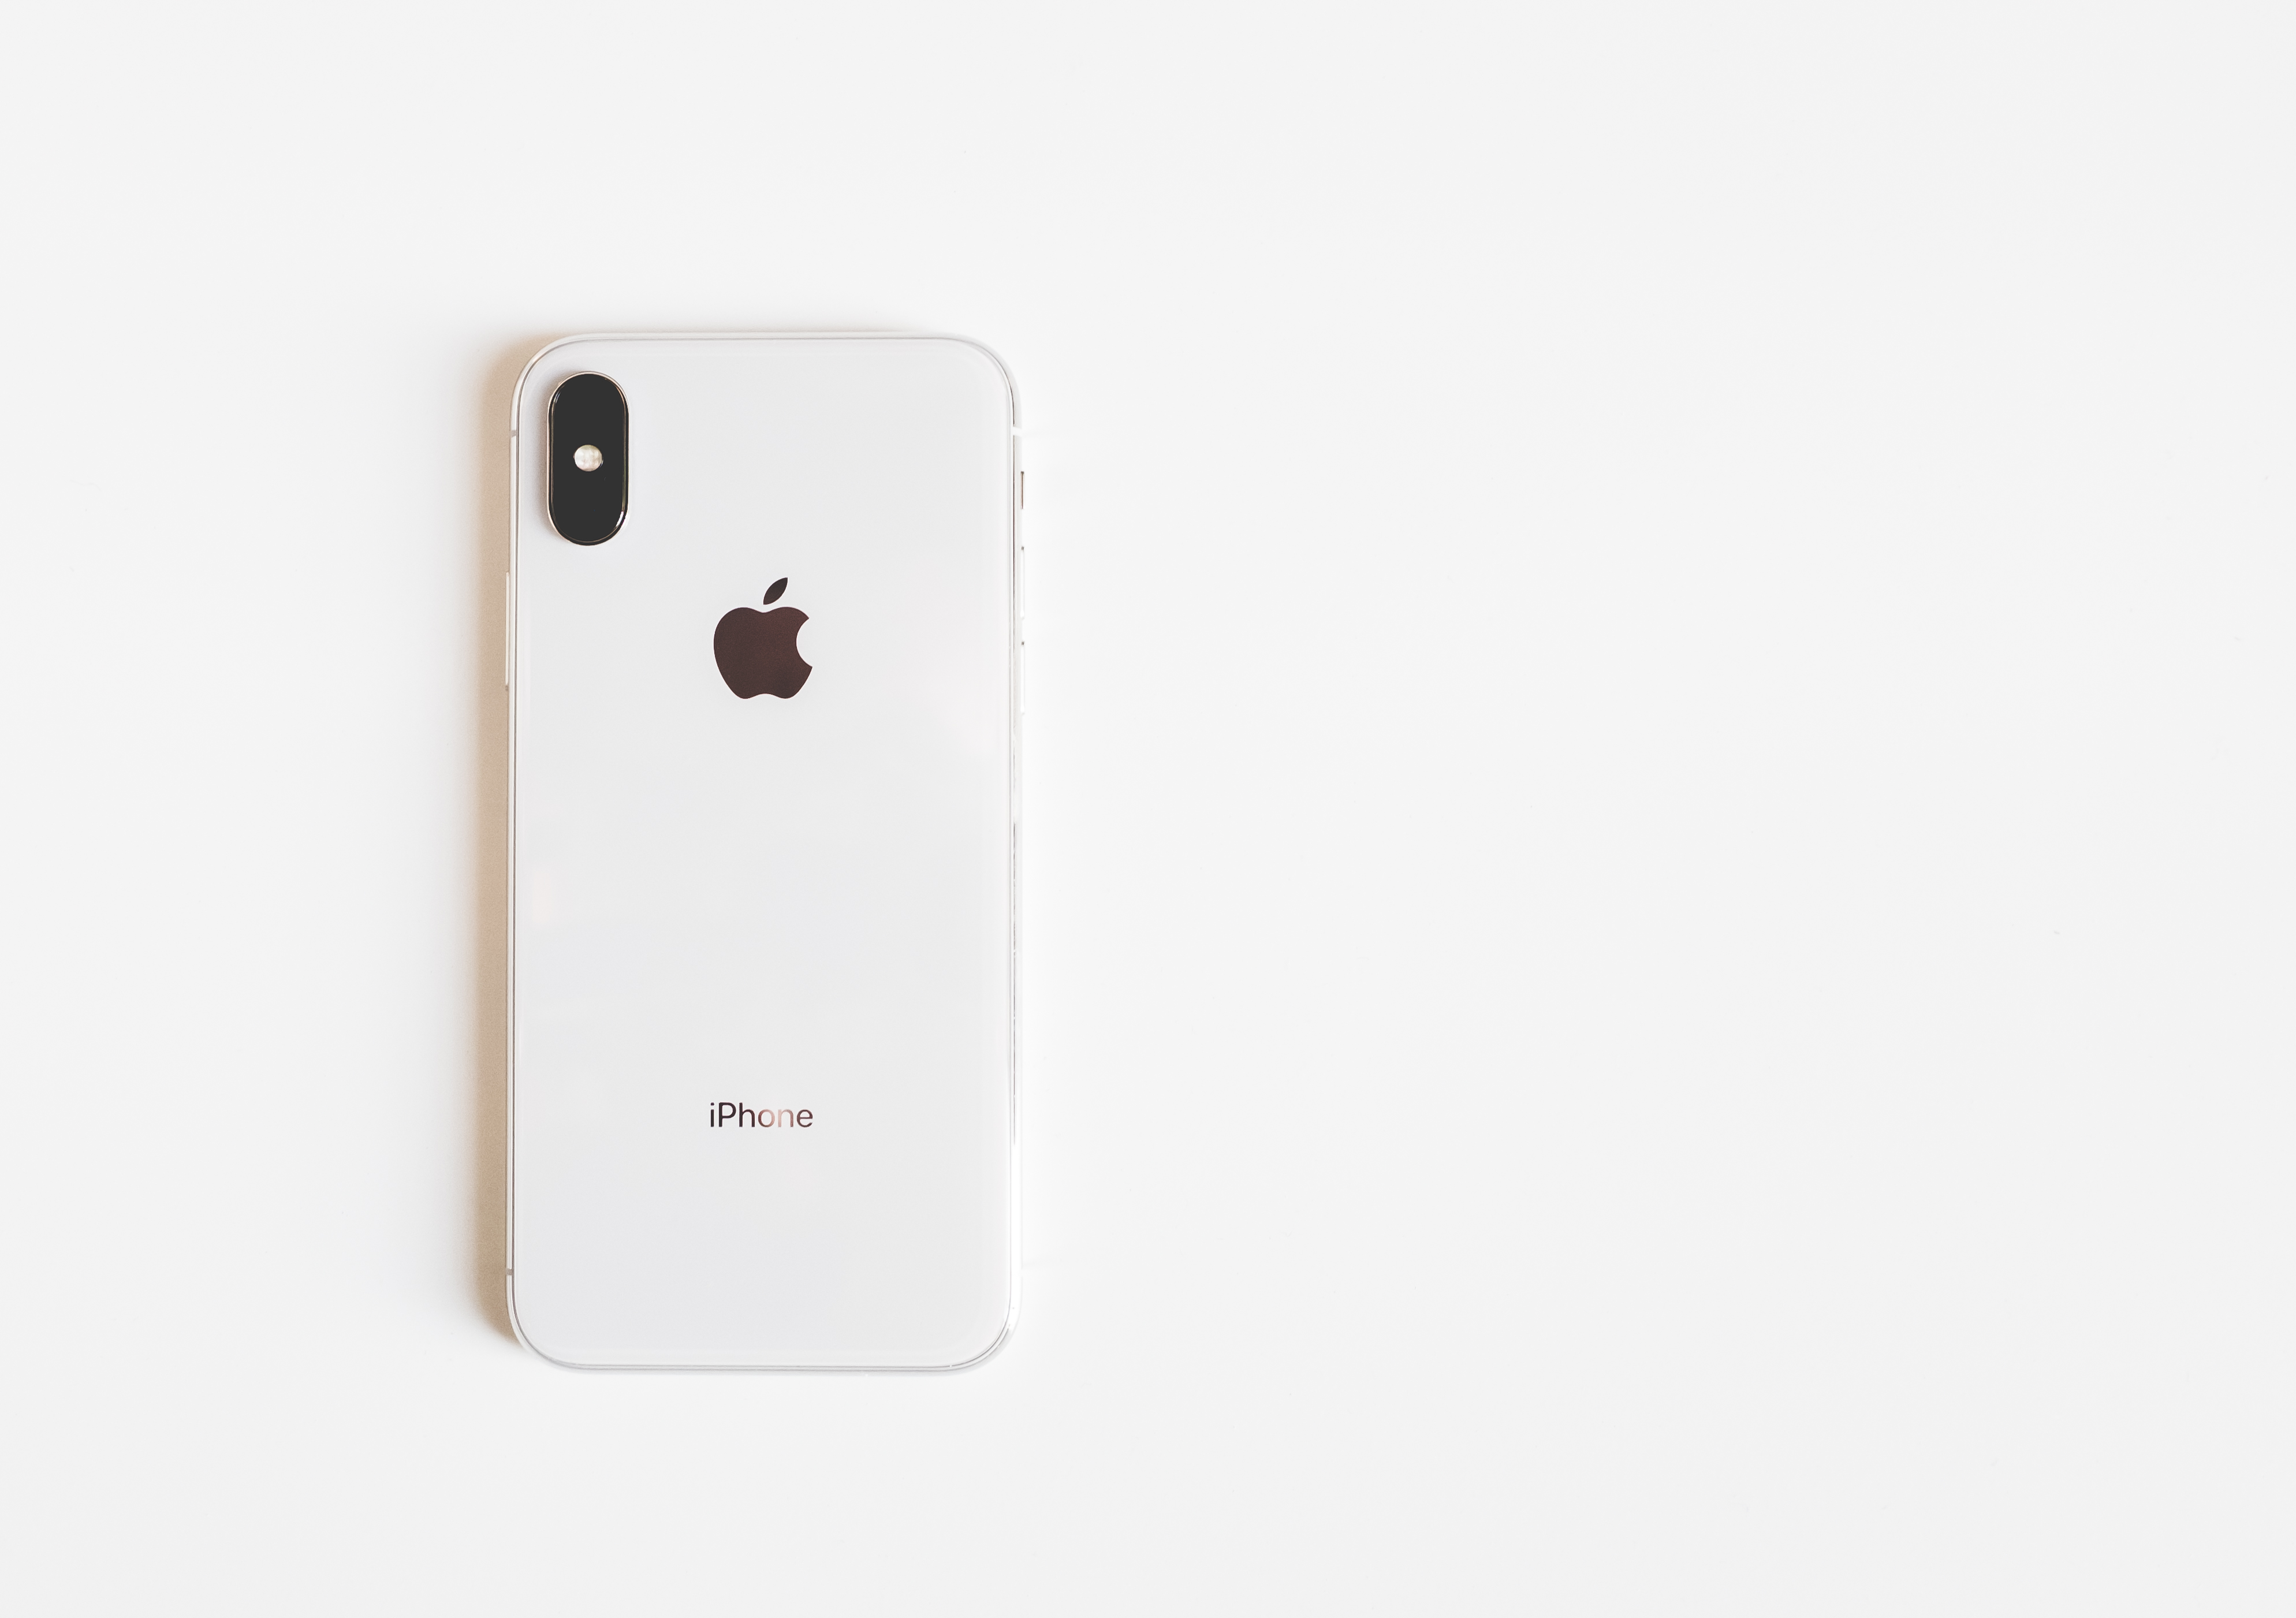 Apple iPhone XS Features: Phone May Miss Out on Powerful AR Sensors